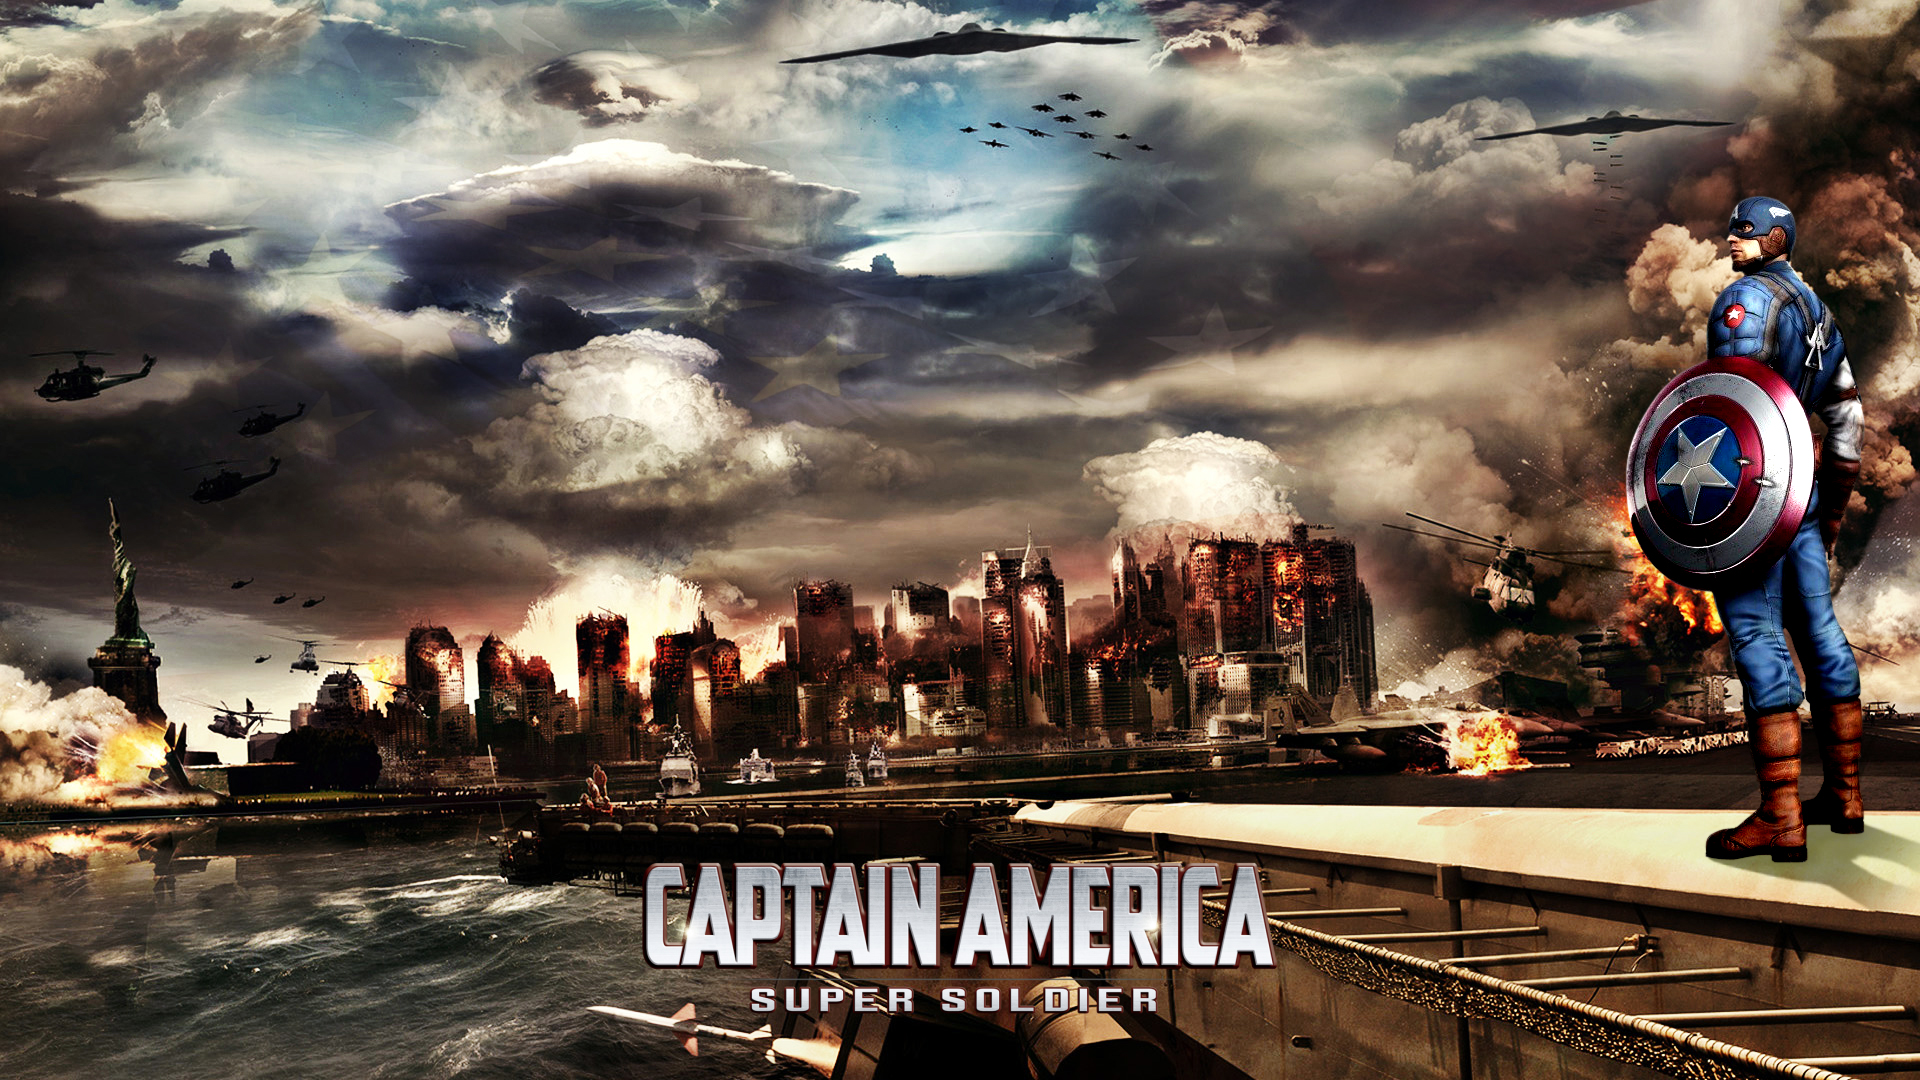 American Hd Wallpaper Widescreen 1920x1080: Super Solider HD Wallpaper